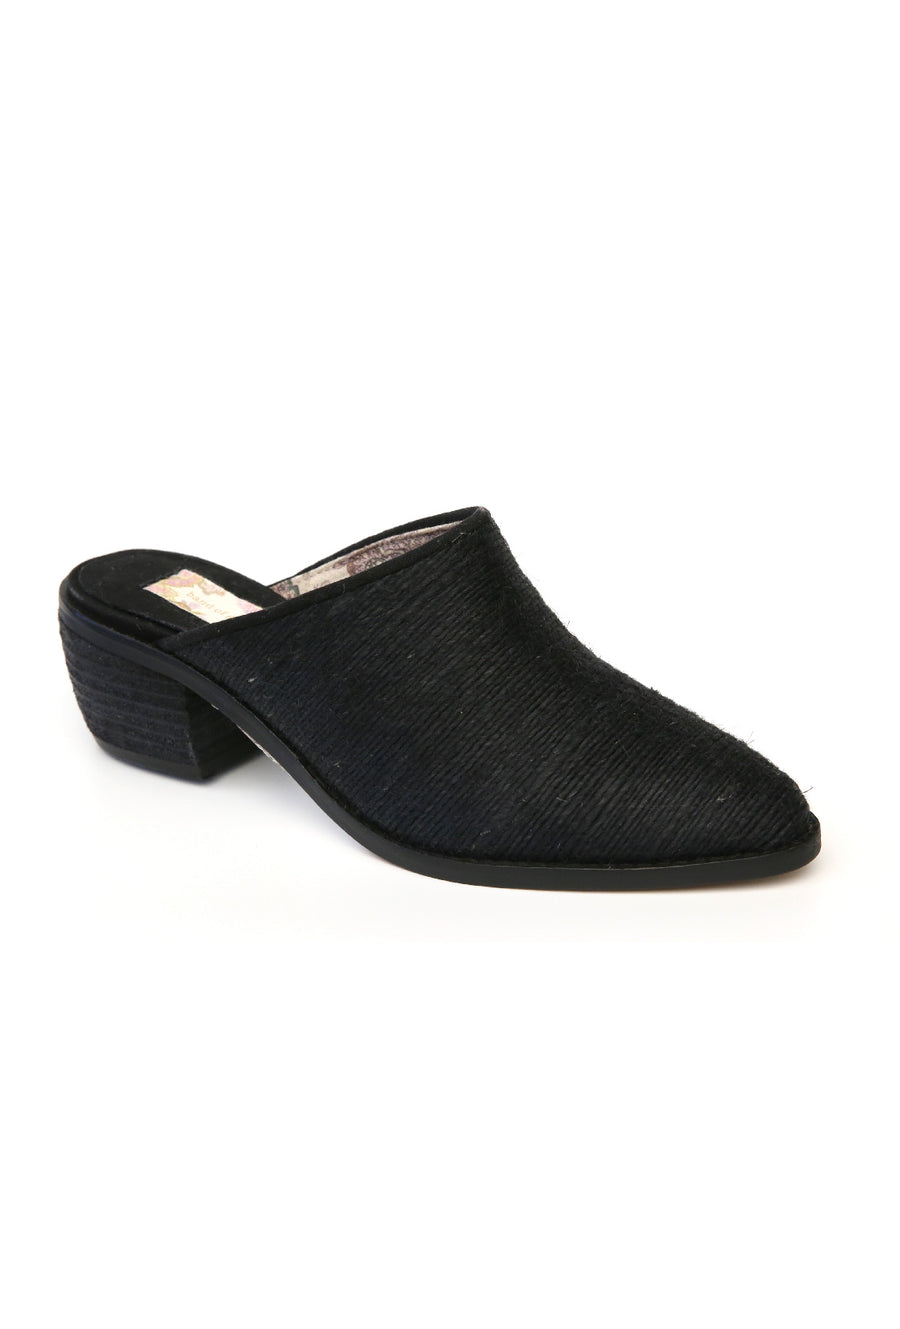 Parker Mini Rope Fabric Black Mule Master